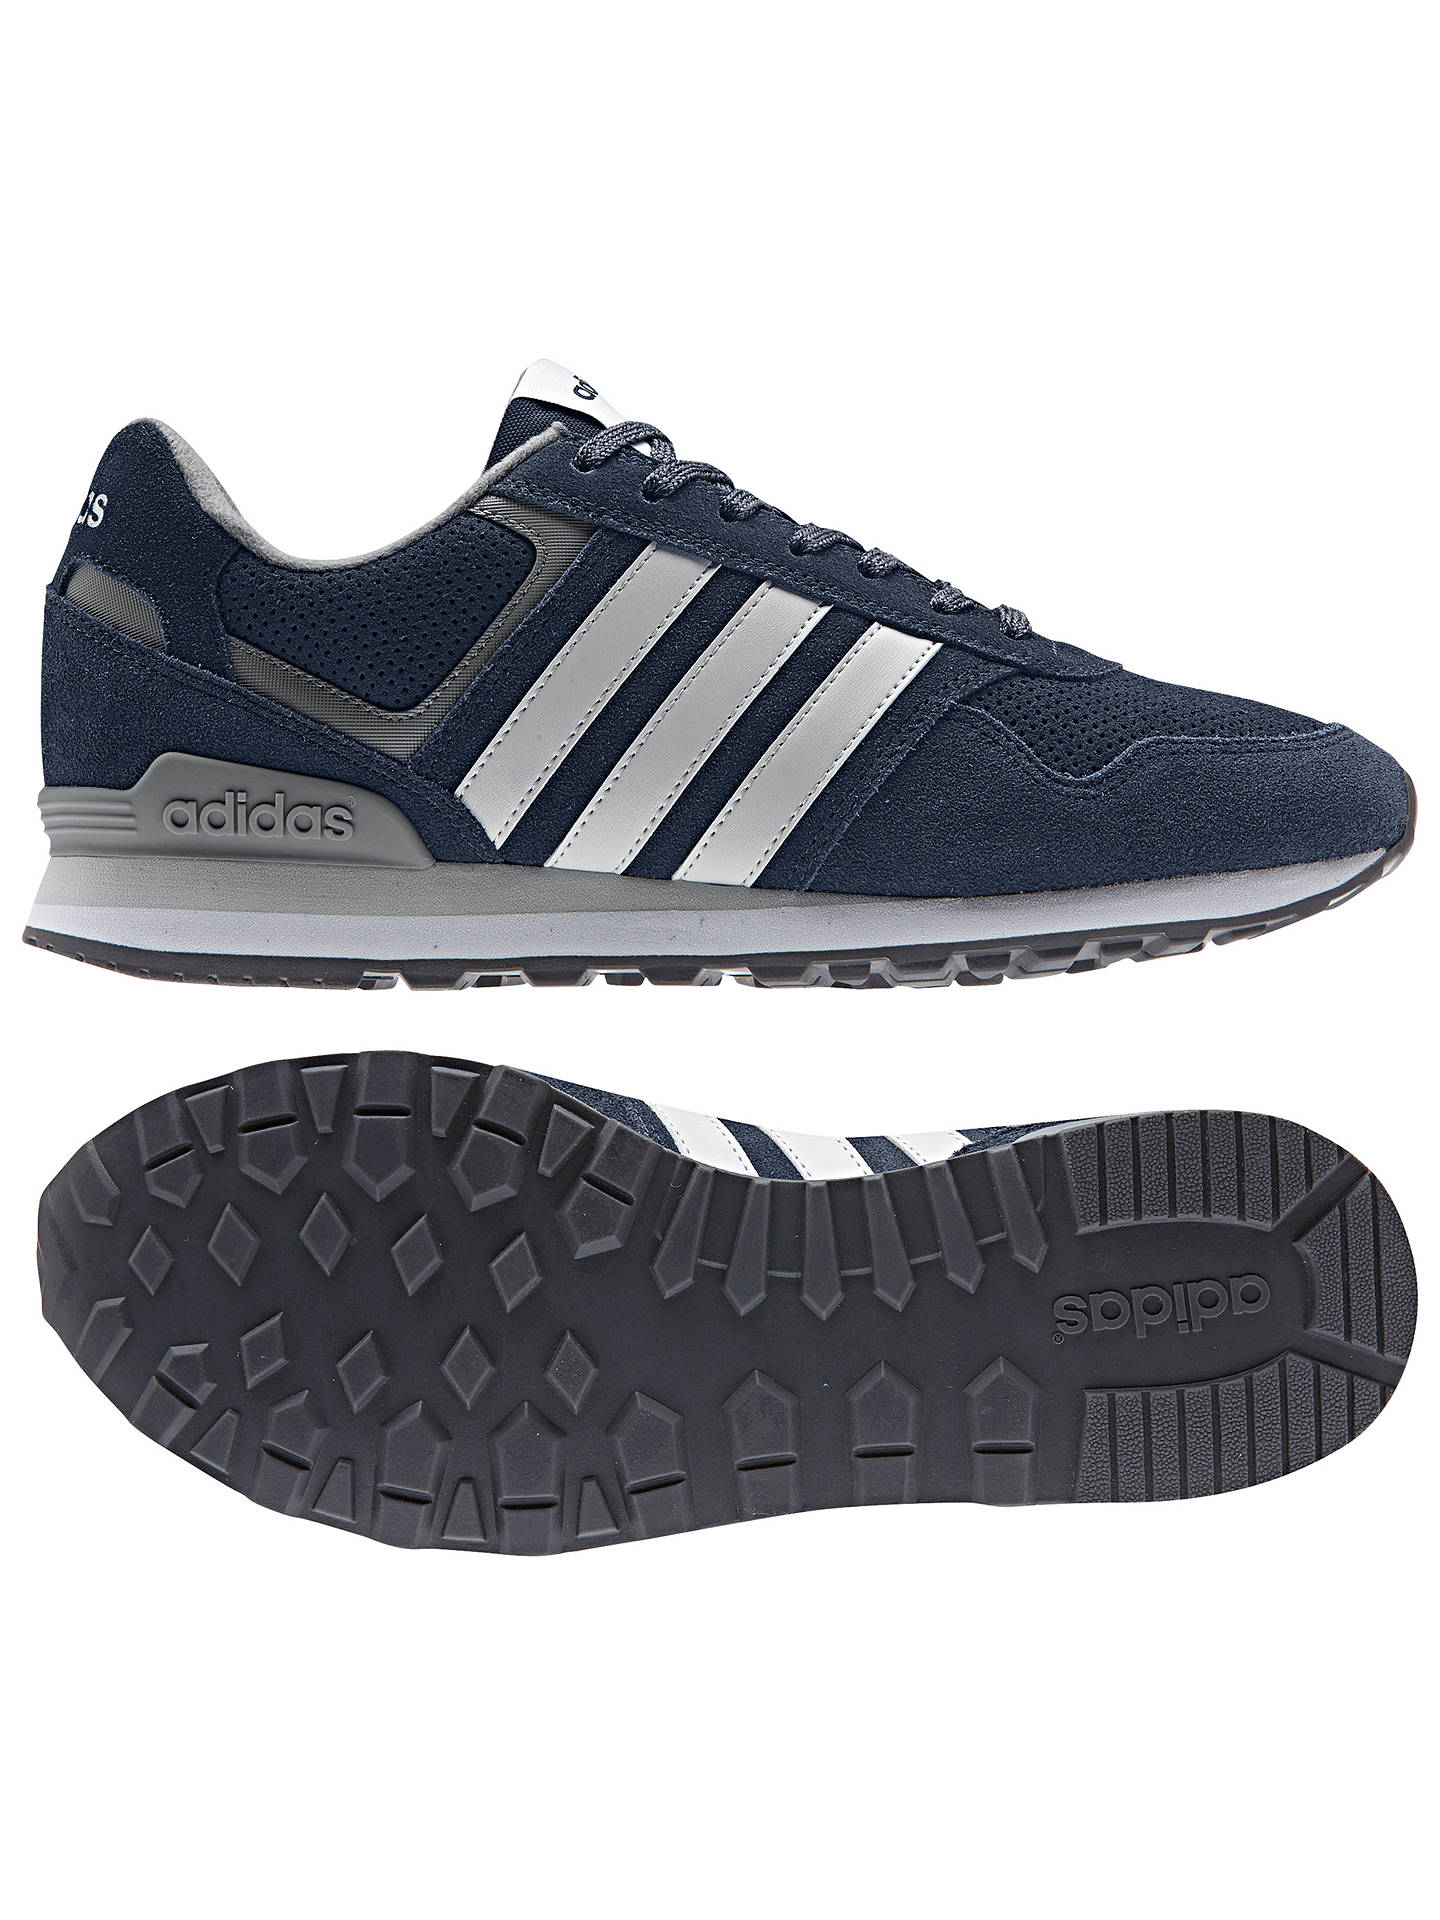 Buyadidas Runeo 10k Men's Suede Trainers, Collegiate Navy, 7 Online at johnlewis.com